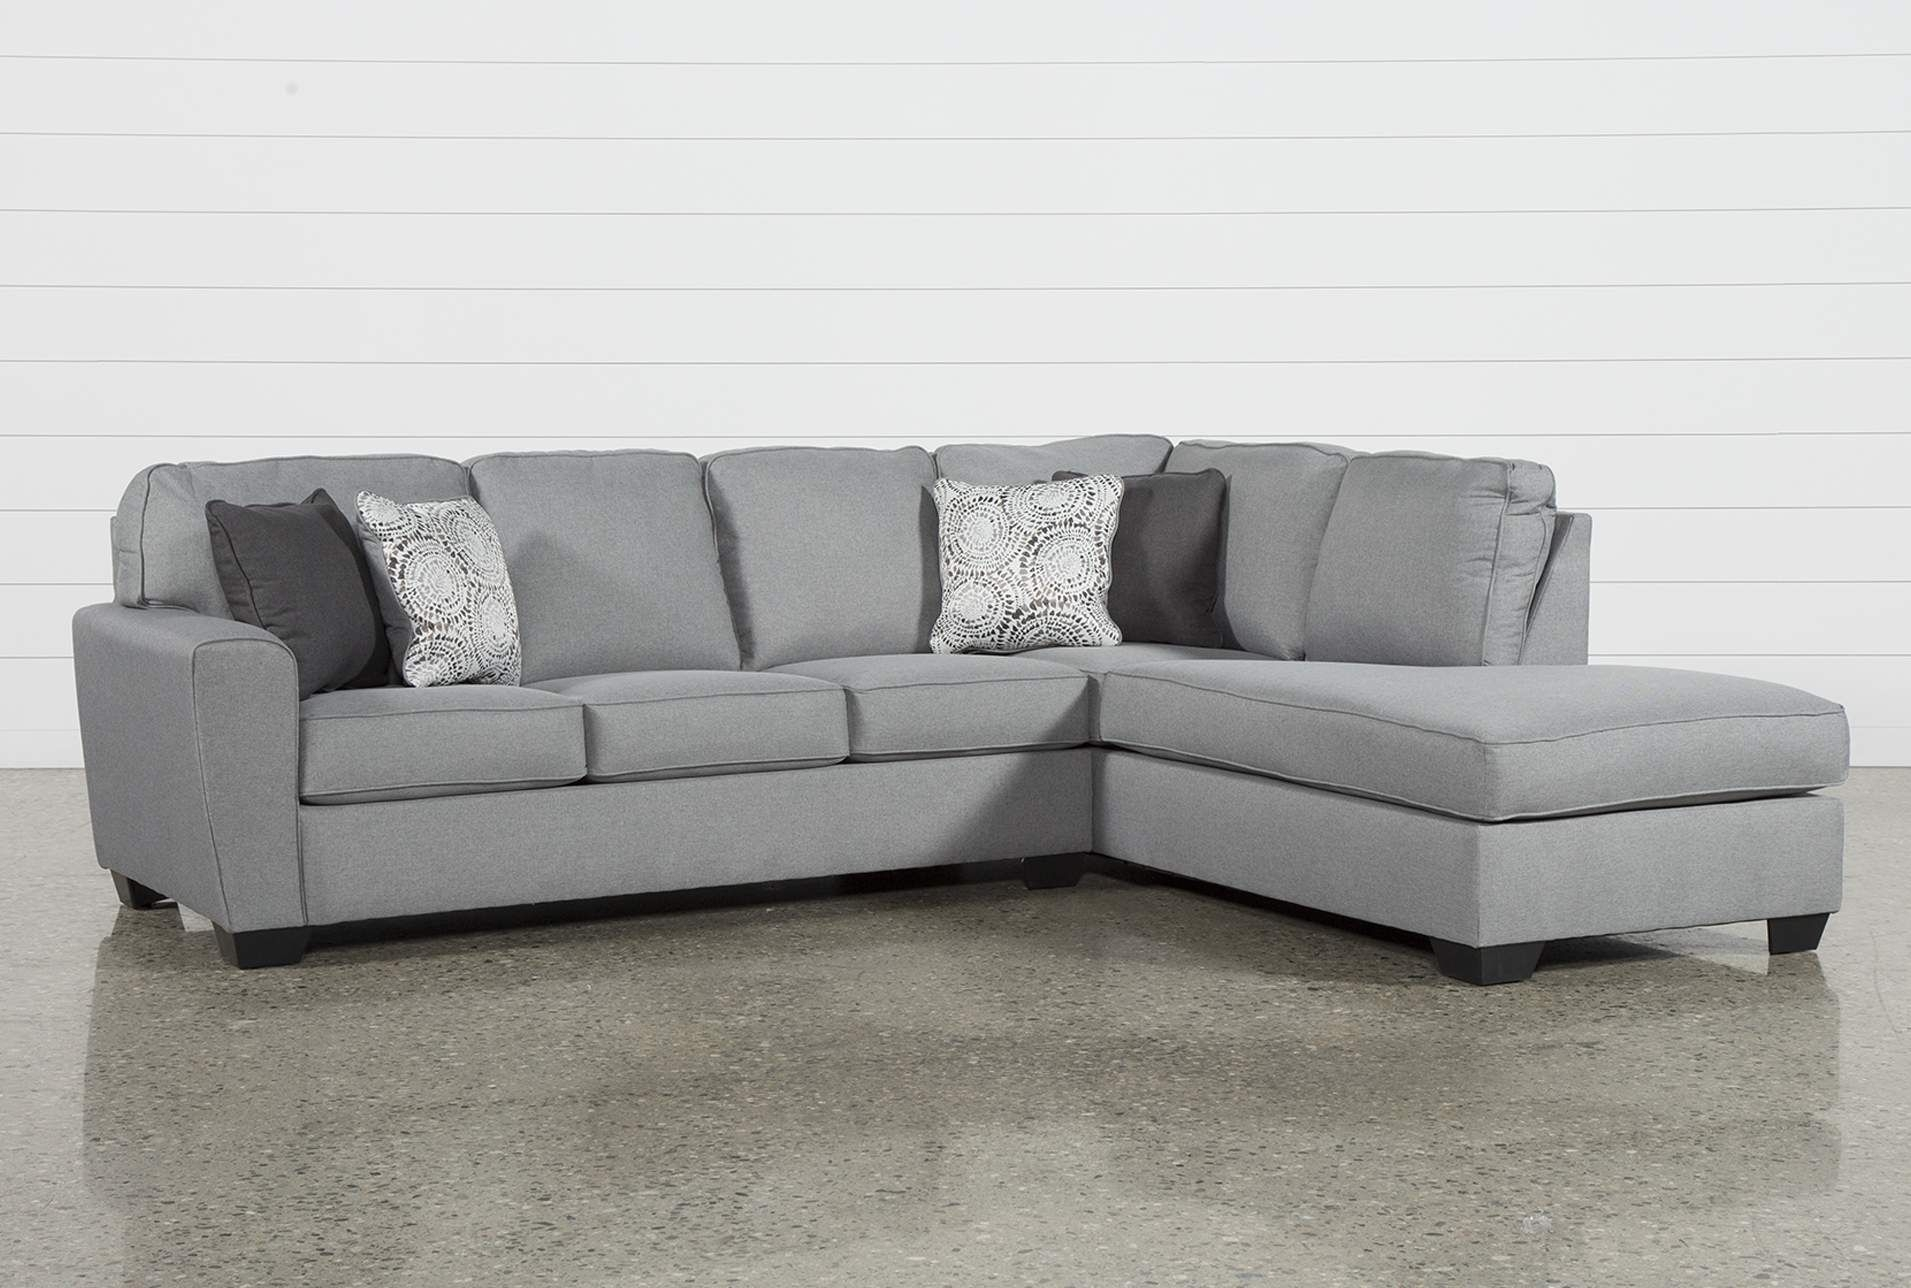 Mcdade Ash 2 Piece Sectional W/raf Chaise | Ash And Products regarding Josephine 2 Piece Sectionals With Laf Sofa (Image 17 of 30)